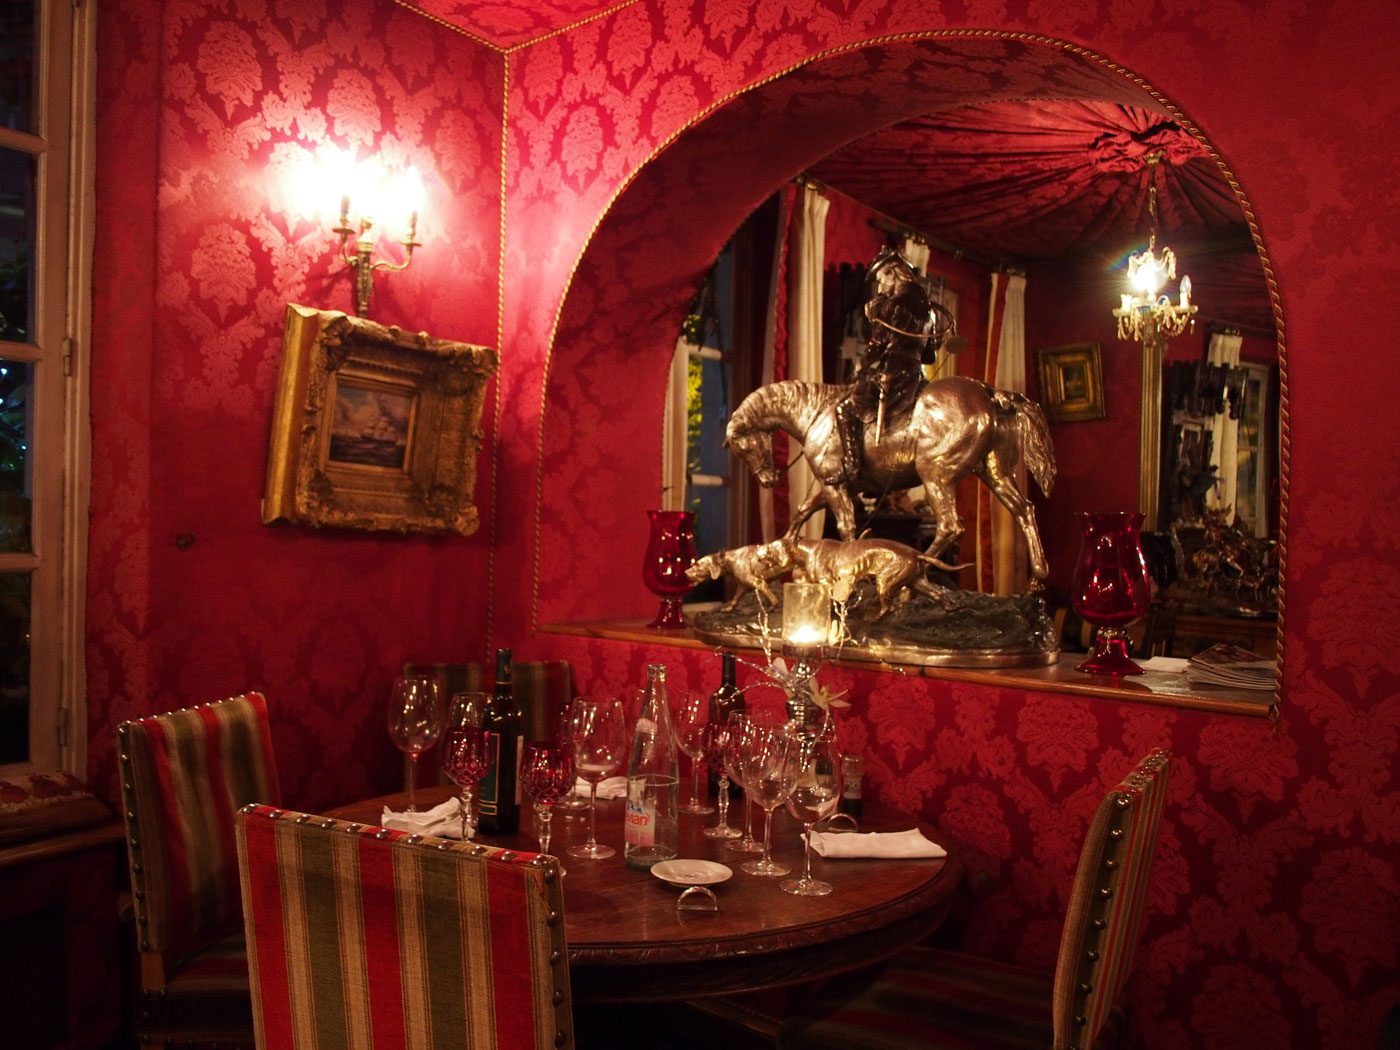 A red interior inside a 500 year old restaurant in Paris, said to be full of ghosts. Olympus OM-D & Panasonic 14/2.5